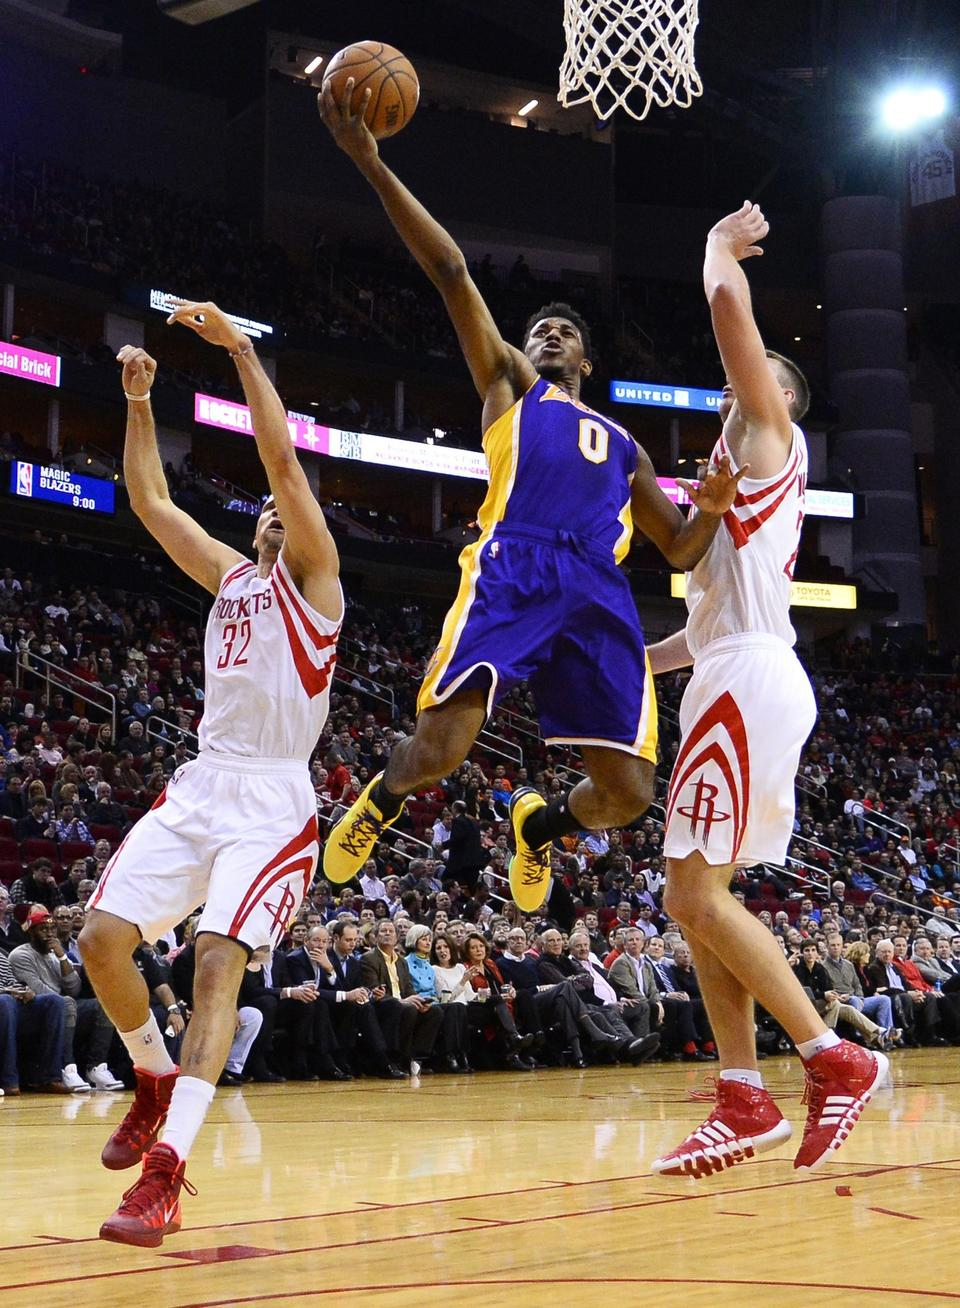 Lakers small forward Nick Young, center, puts up a shot in between Houston Rockets teammates Francisco Garcia, left, and Donatas Motiejunas during the Lakers' 113-99 road loss Wednesday.